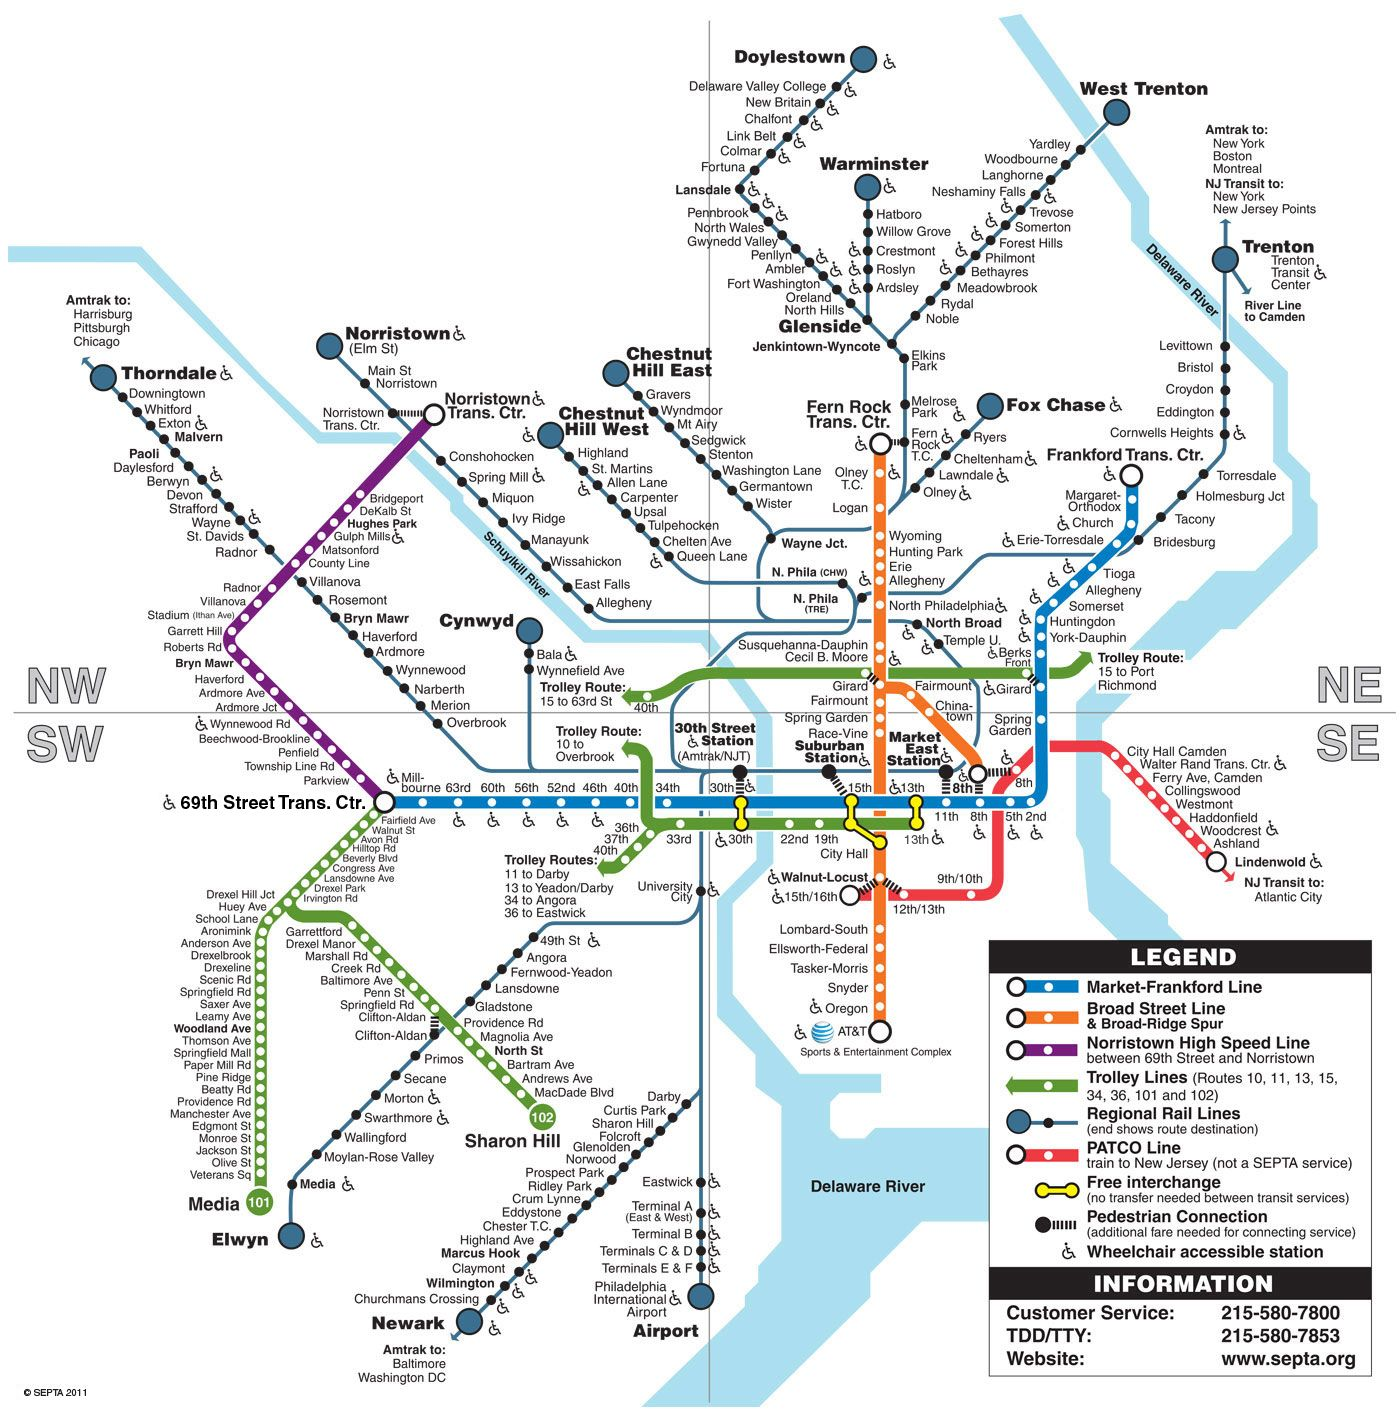 SEPTA Philadelphia Subway | Maps | Pinterest | Philadelphia, Map